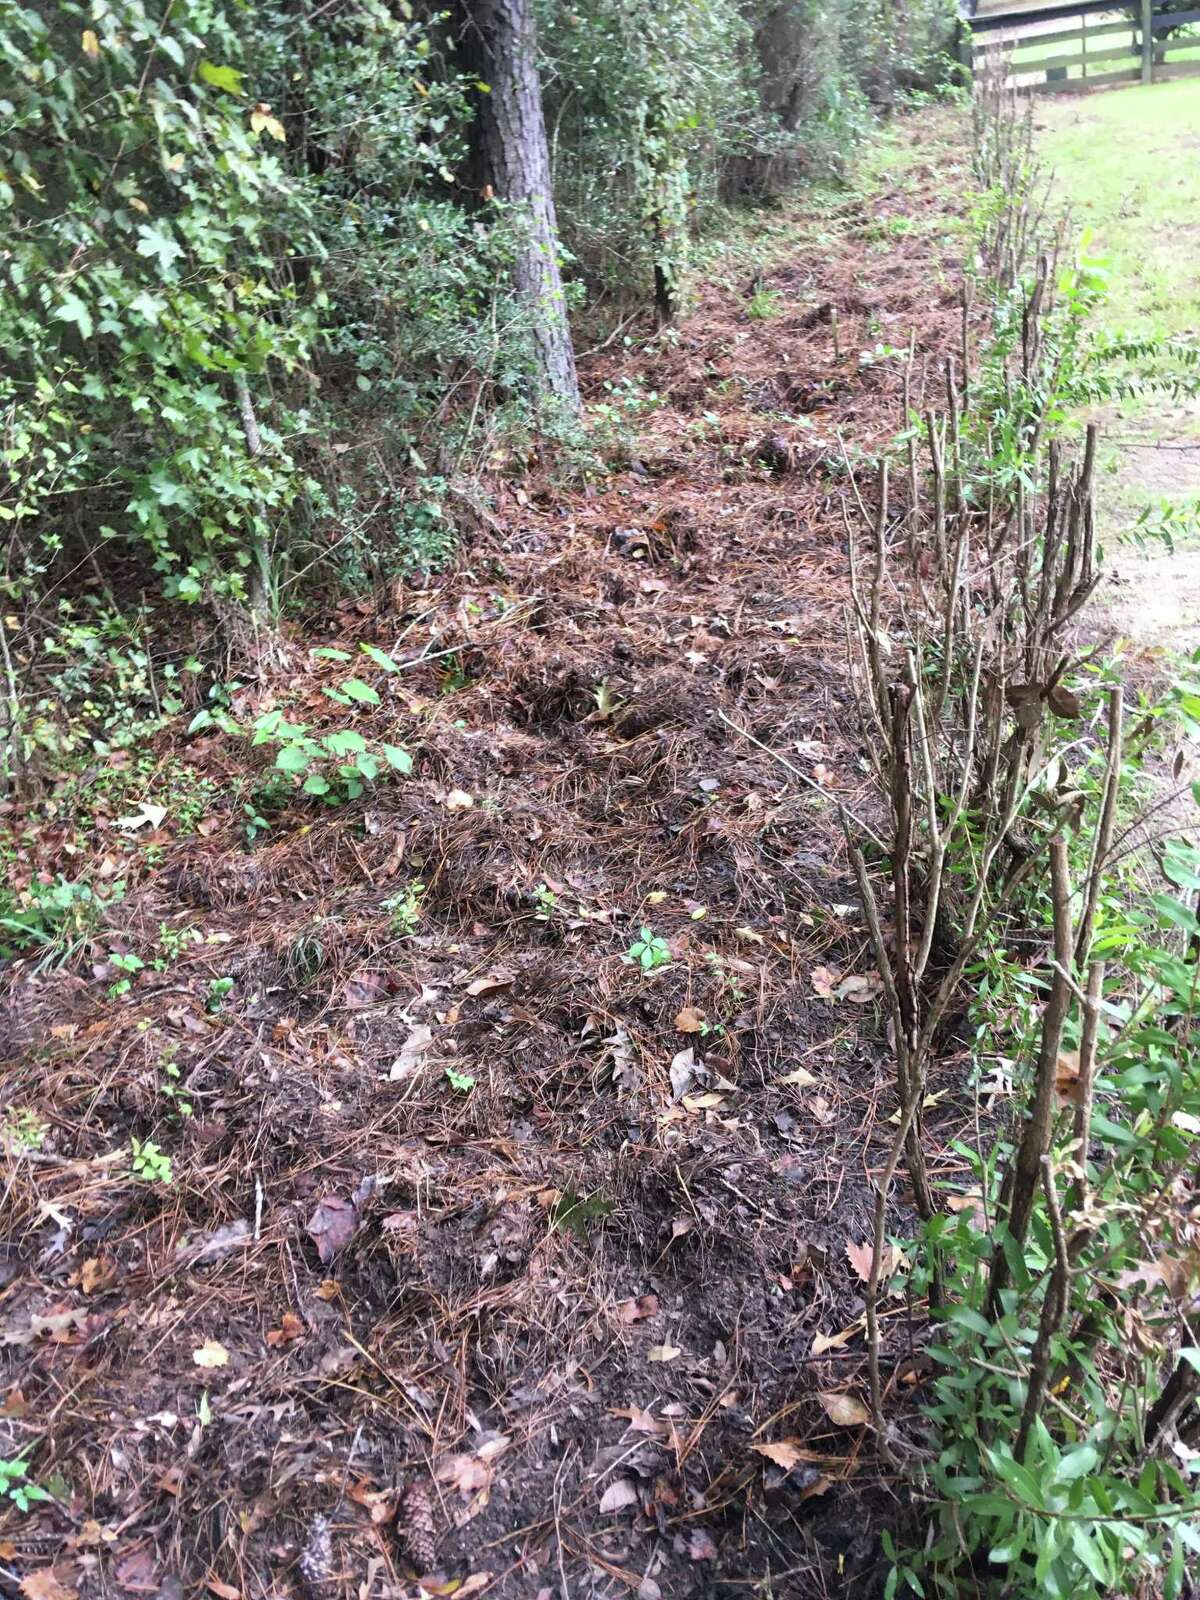 """Chris Keller saysferalhogshavebeen running wild in theStonecrest Ranch subdivision east of The Woodlands. Locals describe it as a ?""""hogepidemic?"""" and have been calling on officials to solve the problem, all to little avail.Keller estimates he?'s spent at least $5,000 fixing his lawn after multiplehoginvasions."""